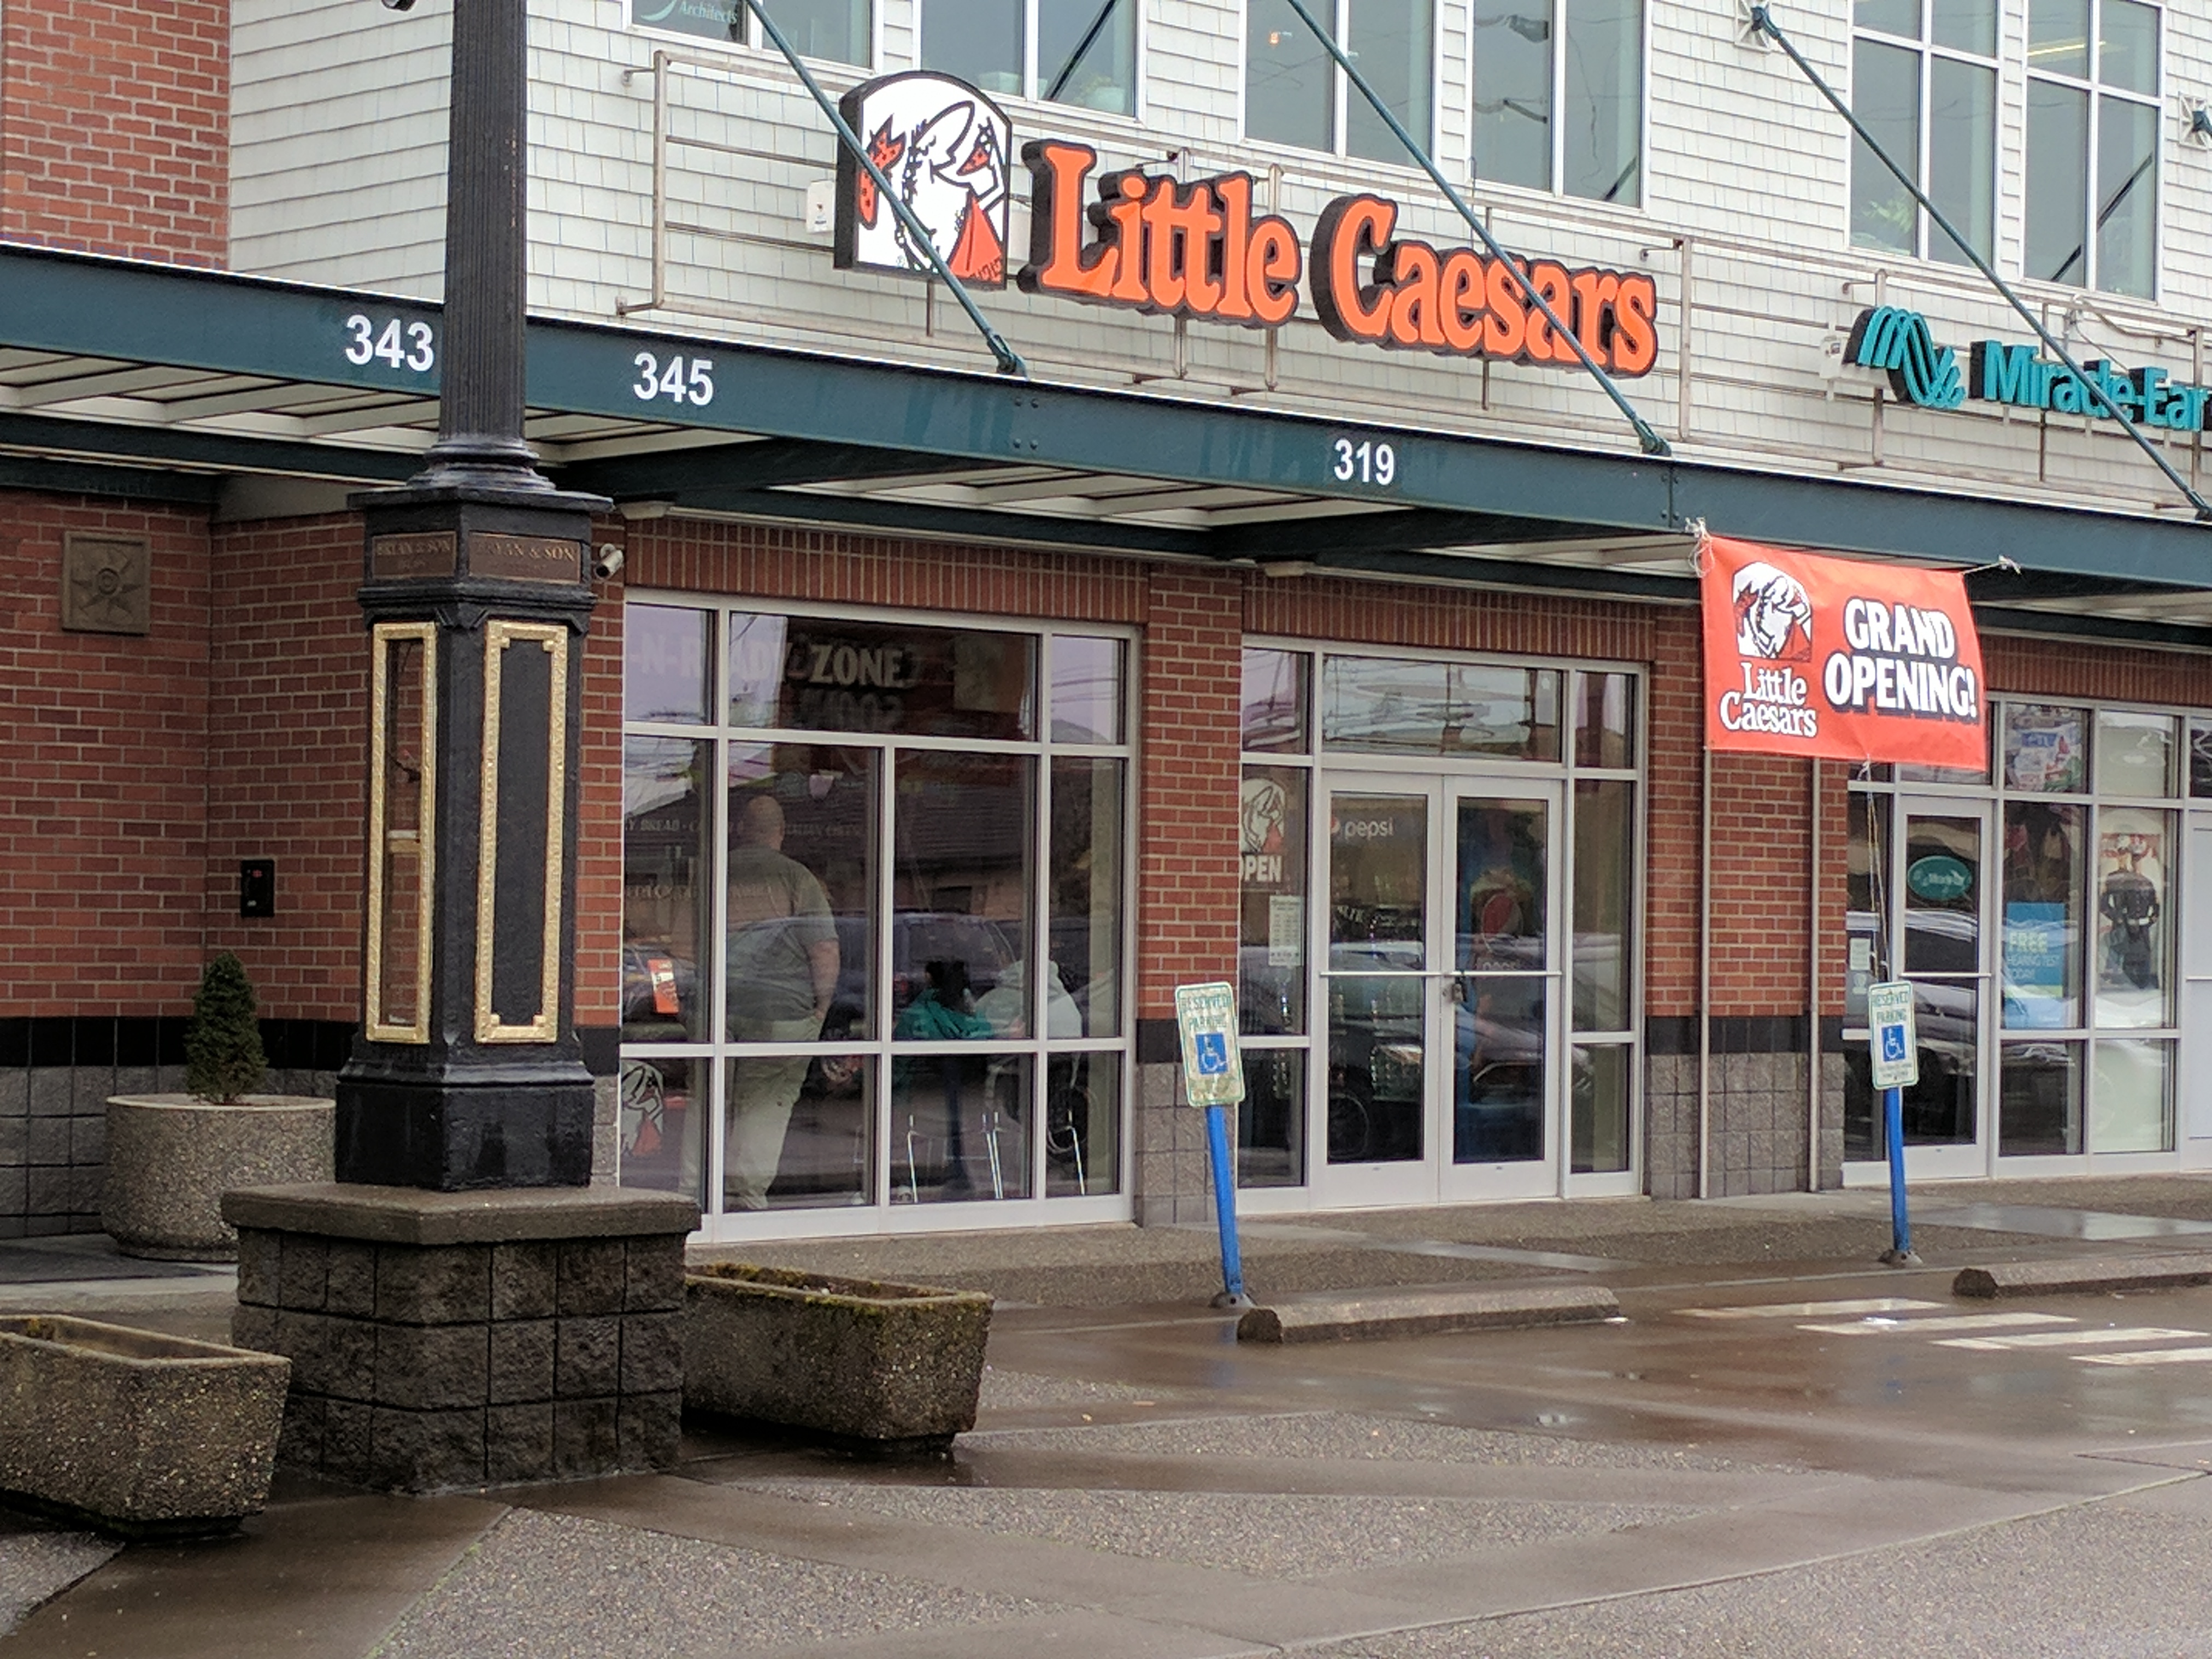 6 items· Find listings related to Little Caesars in Palo Alto on mtl999.ga See reviews, photos, directions, phone numbers and more for Little Caesars locations in Palo Alto, CA. Start your search by typing in the business name below.